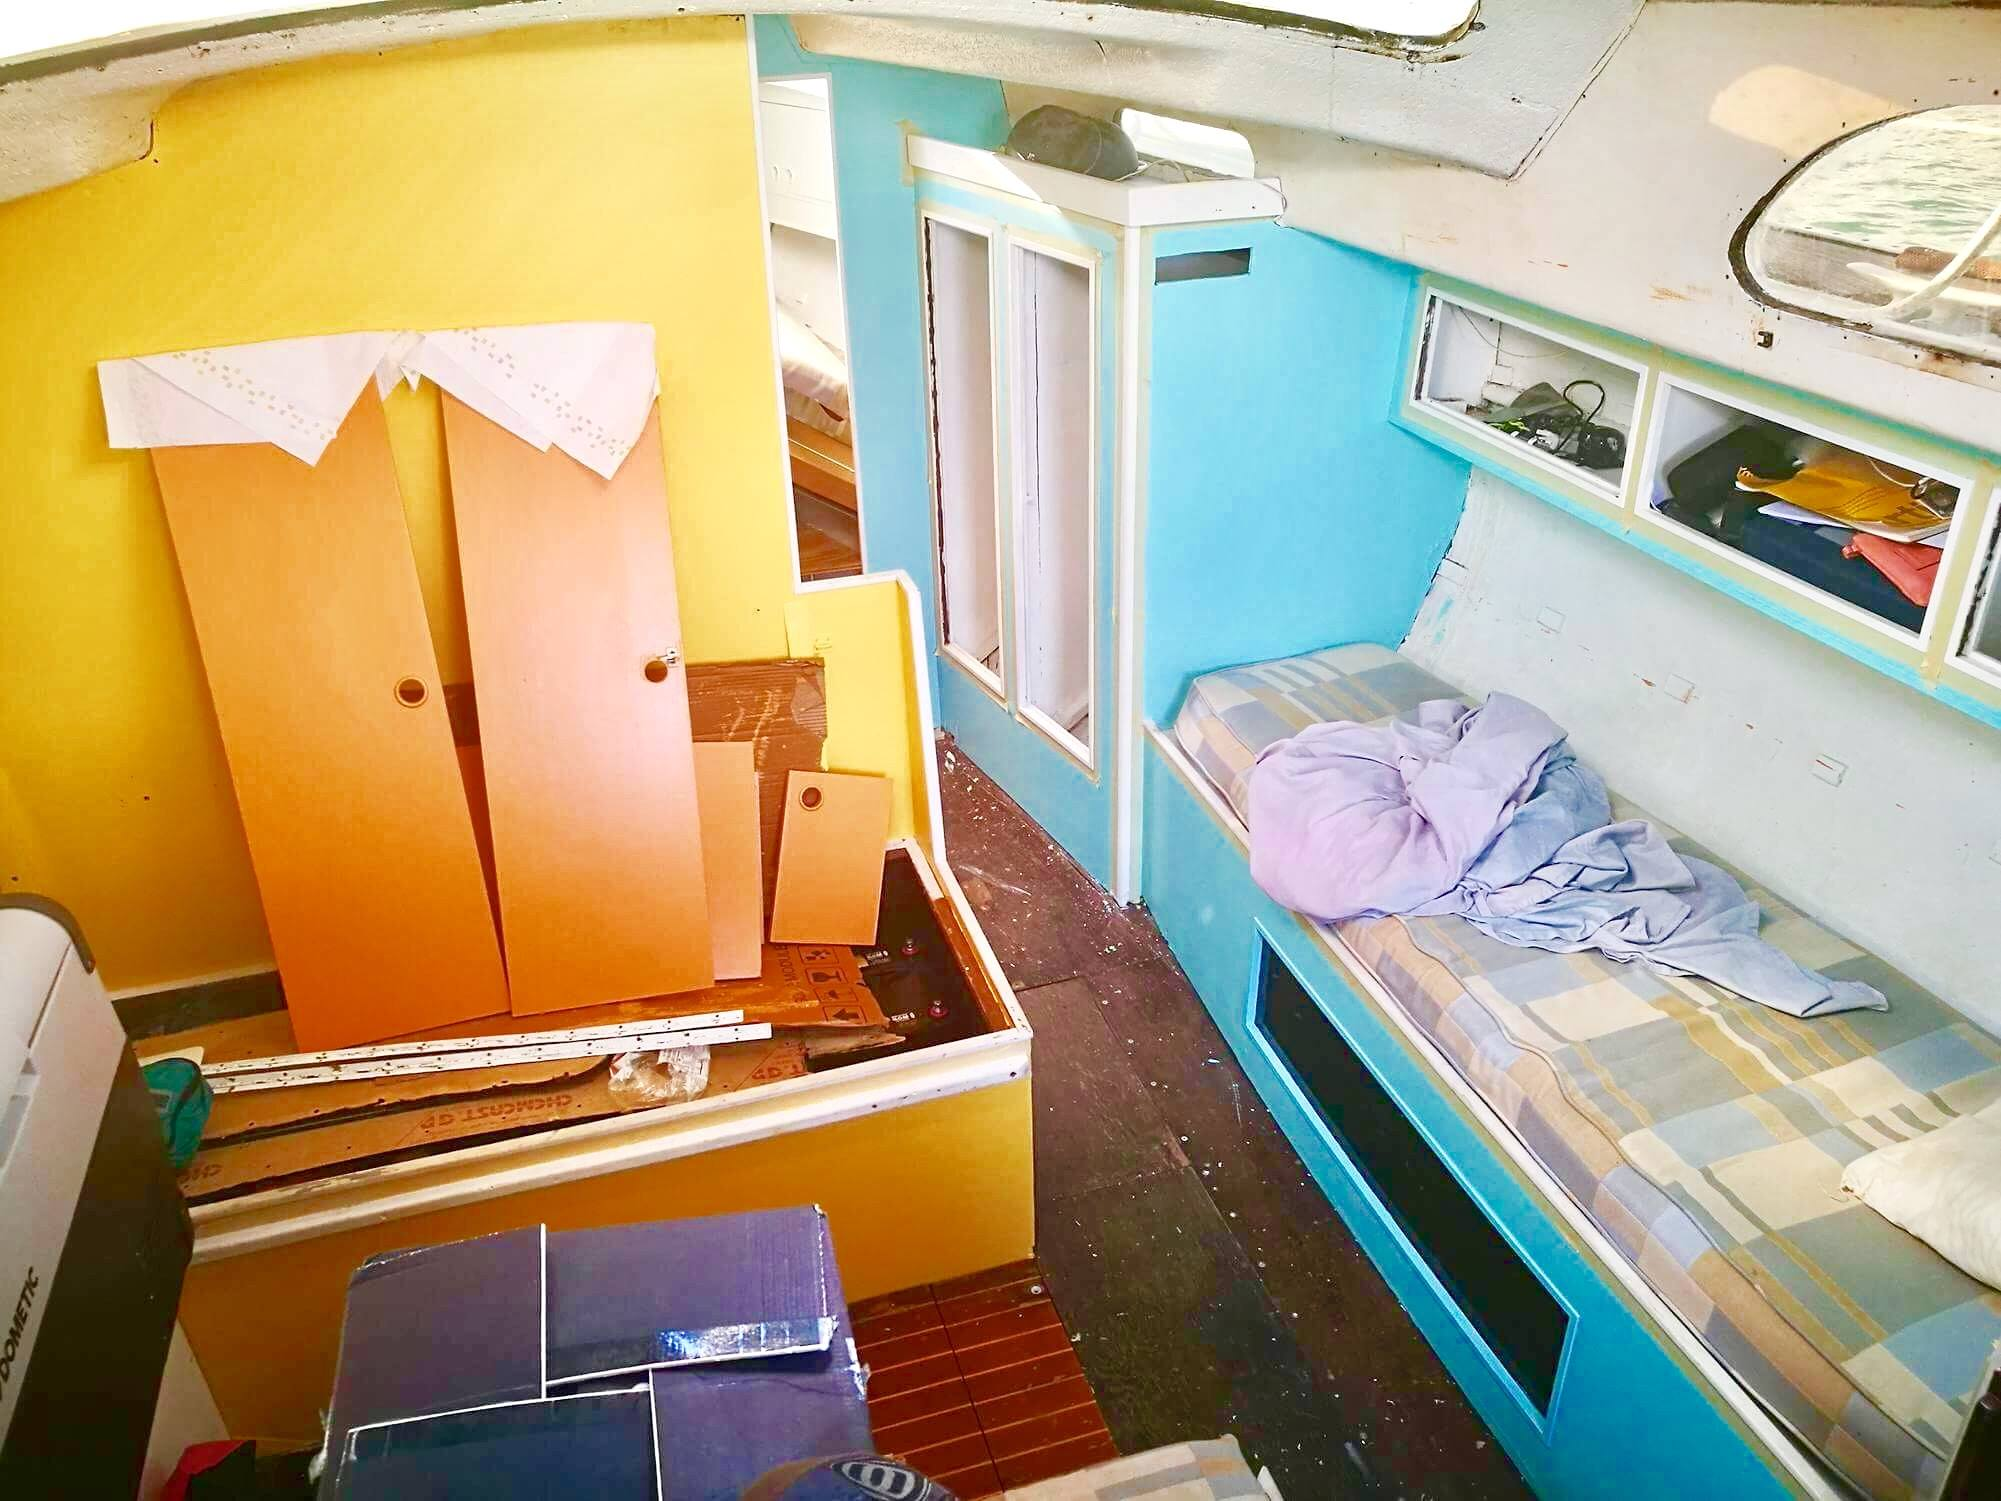 Refitting our Sailboat Interior: From an Antique Sailboat to